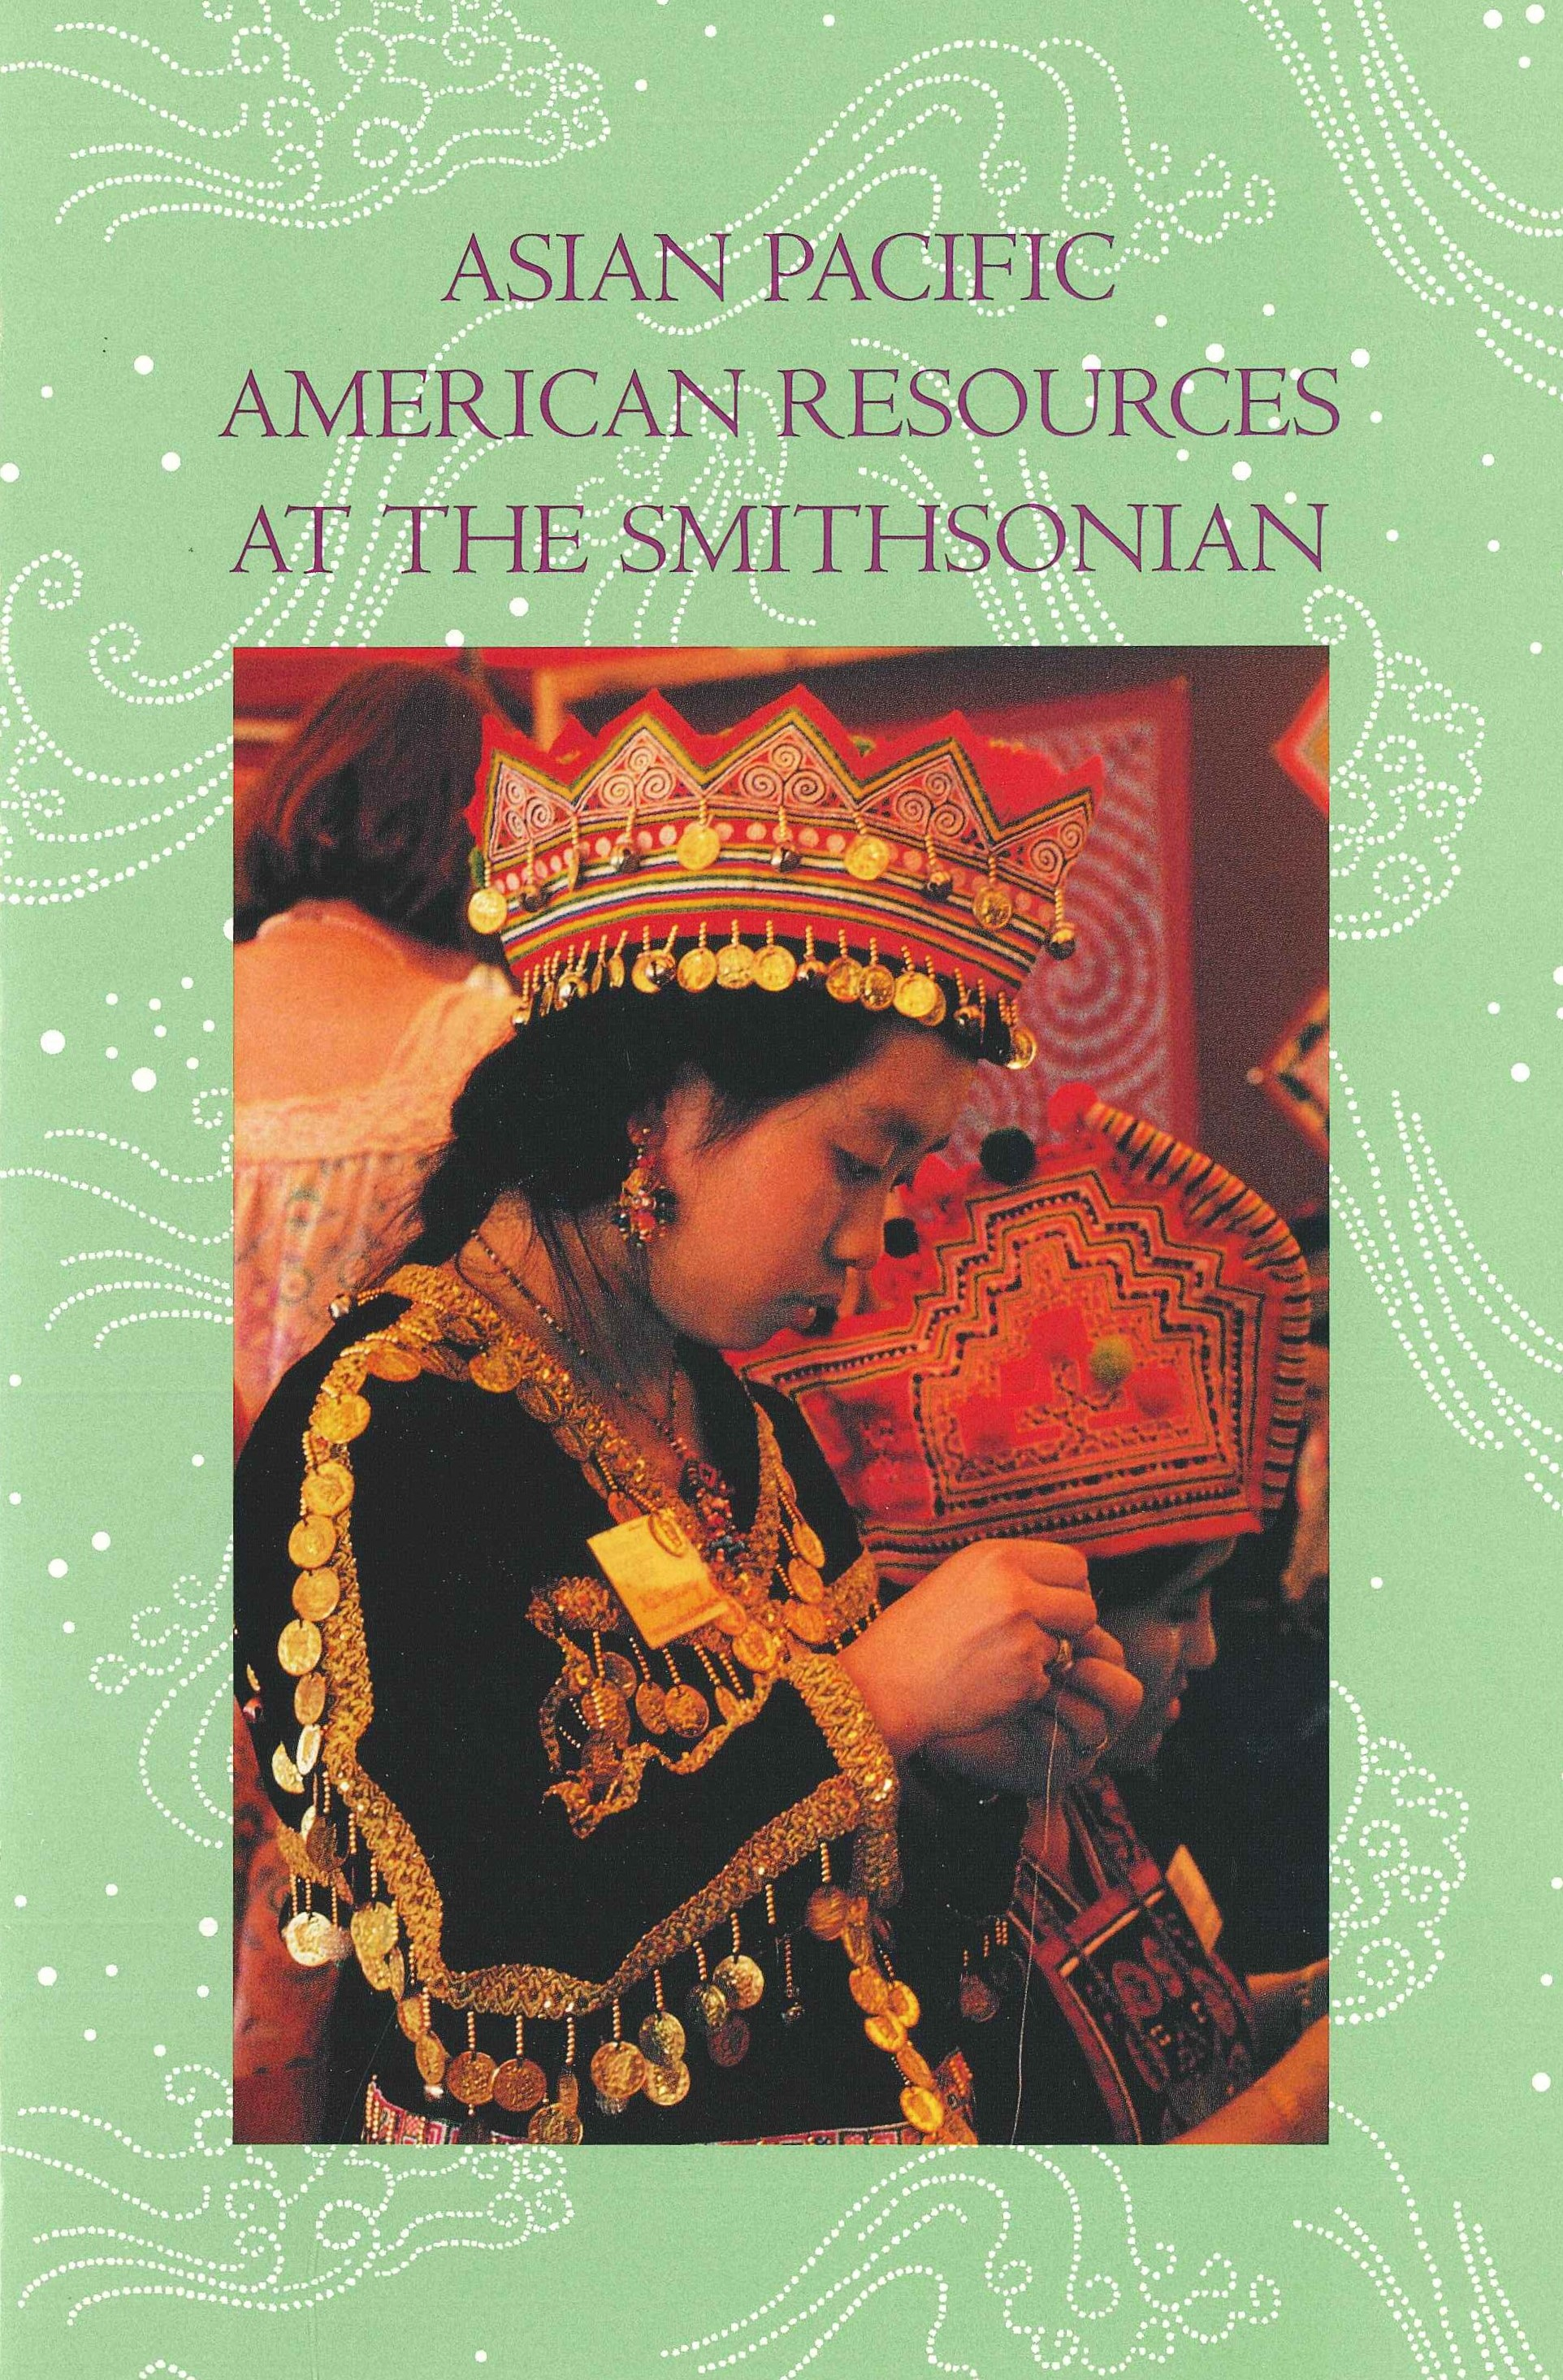 Brochure with light green cover with patterns on it with color image of individual in Hmong embroide